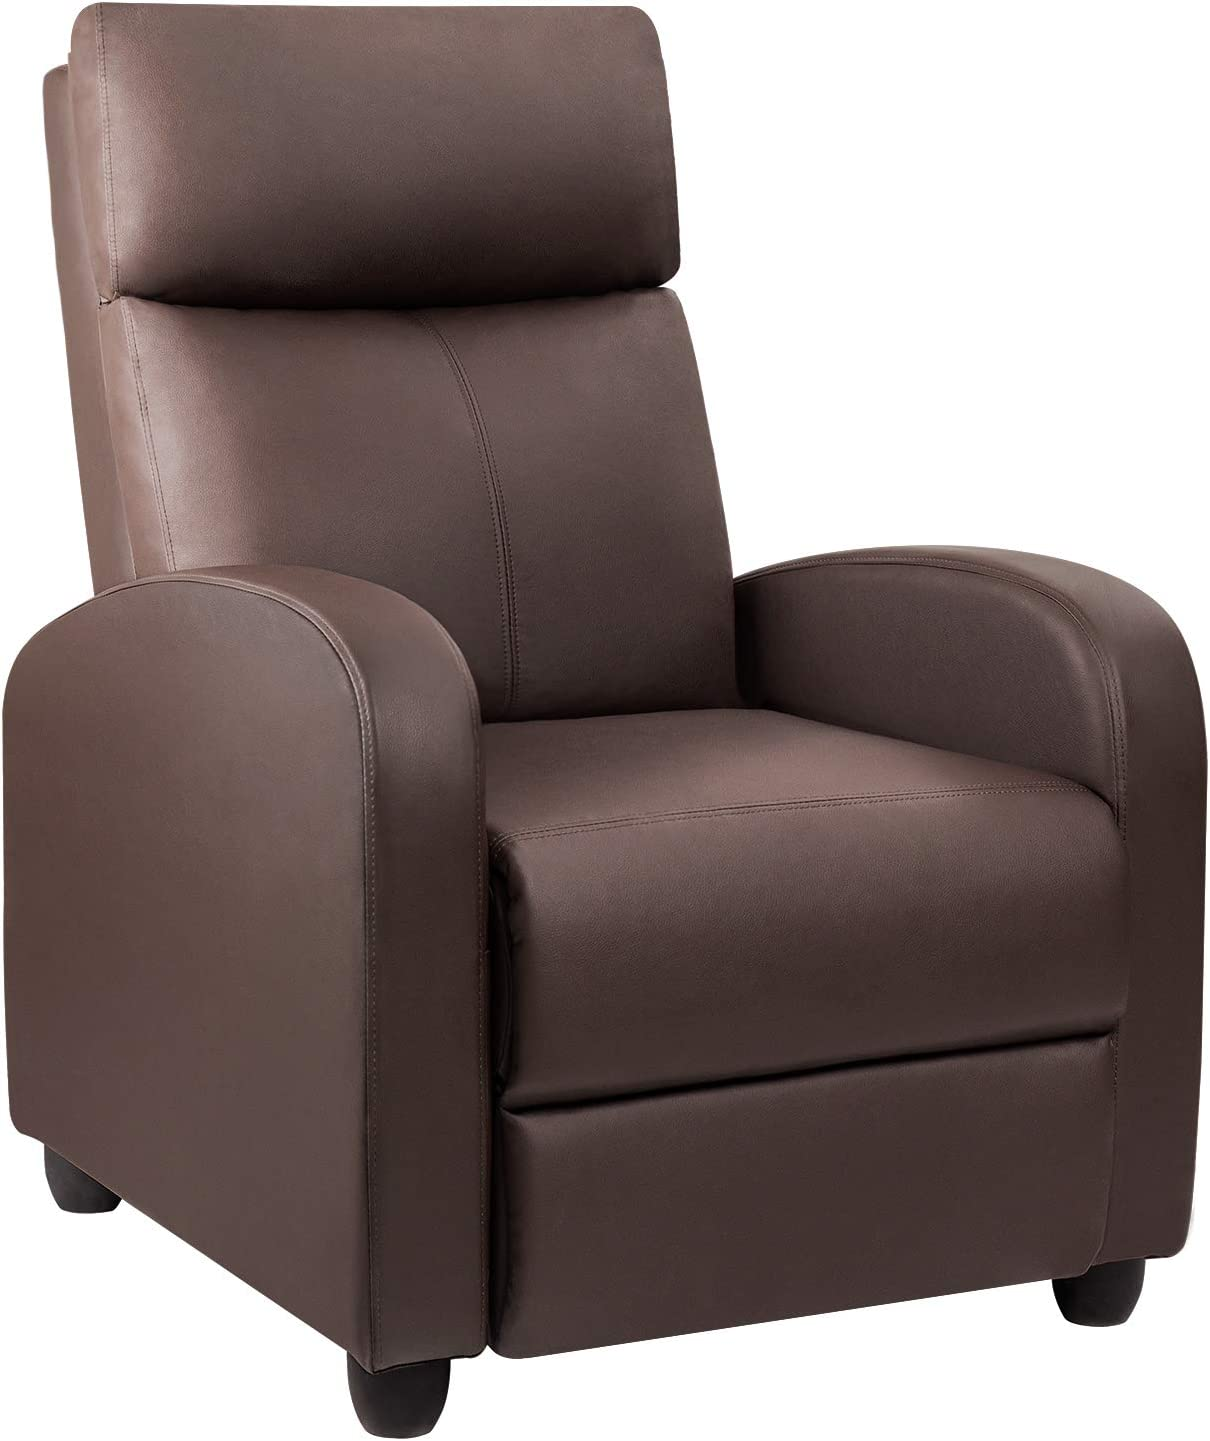 Devoko Adjustable Single Recliner Chair